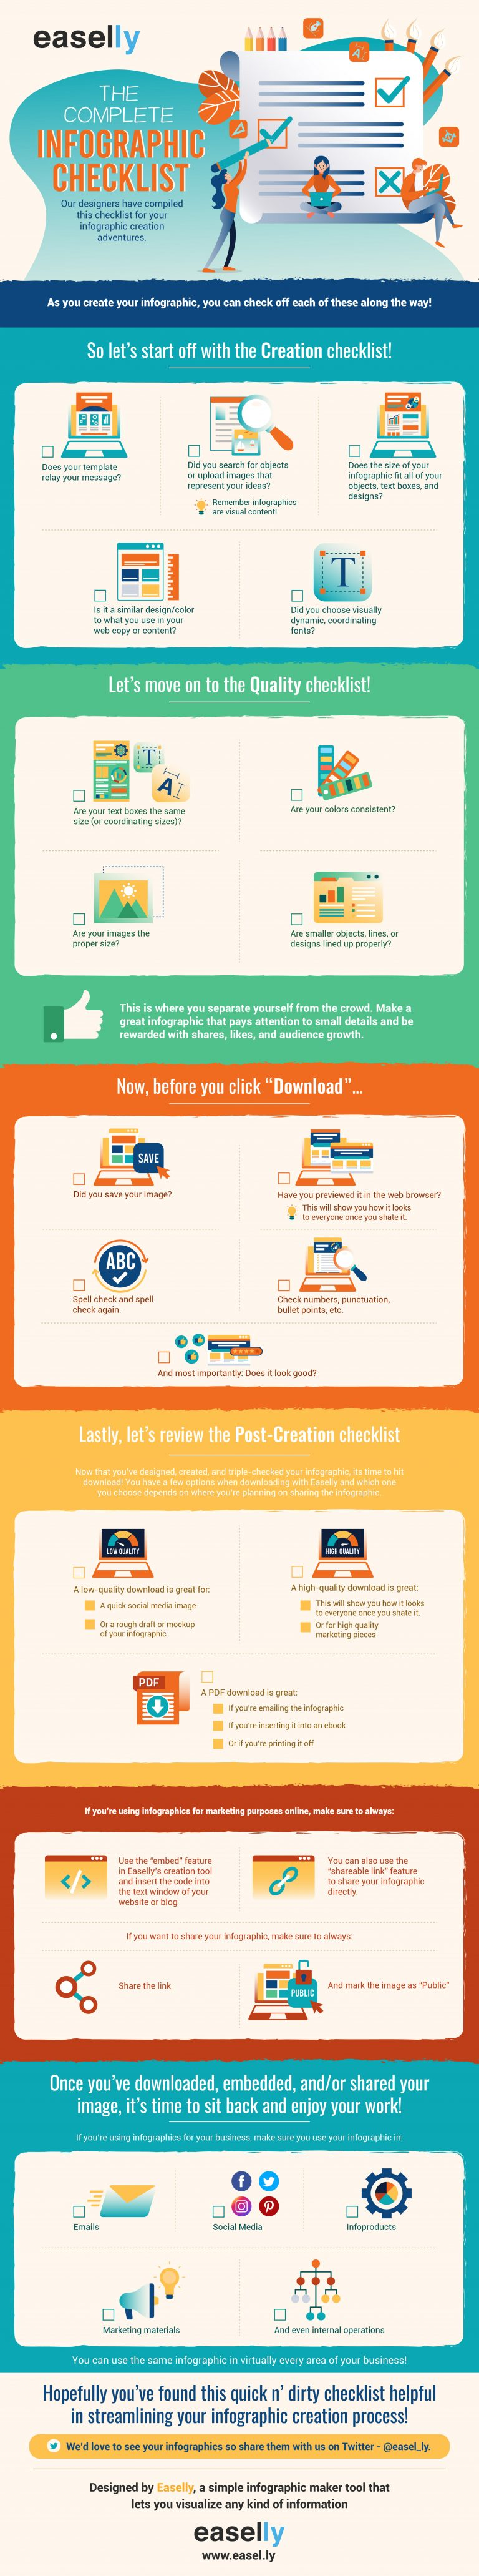 An infographic about an infographic checklist